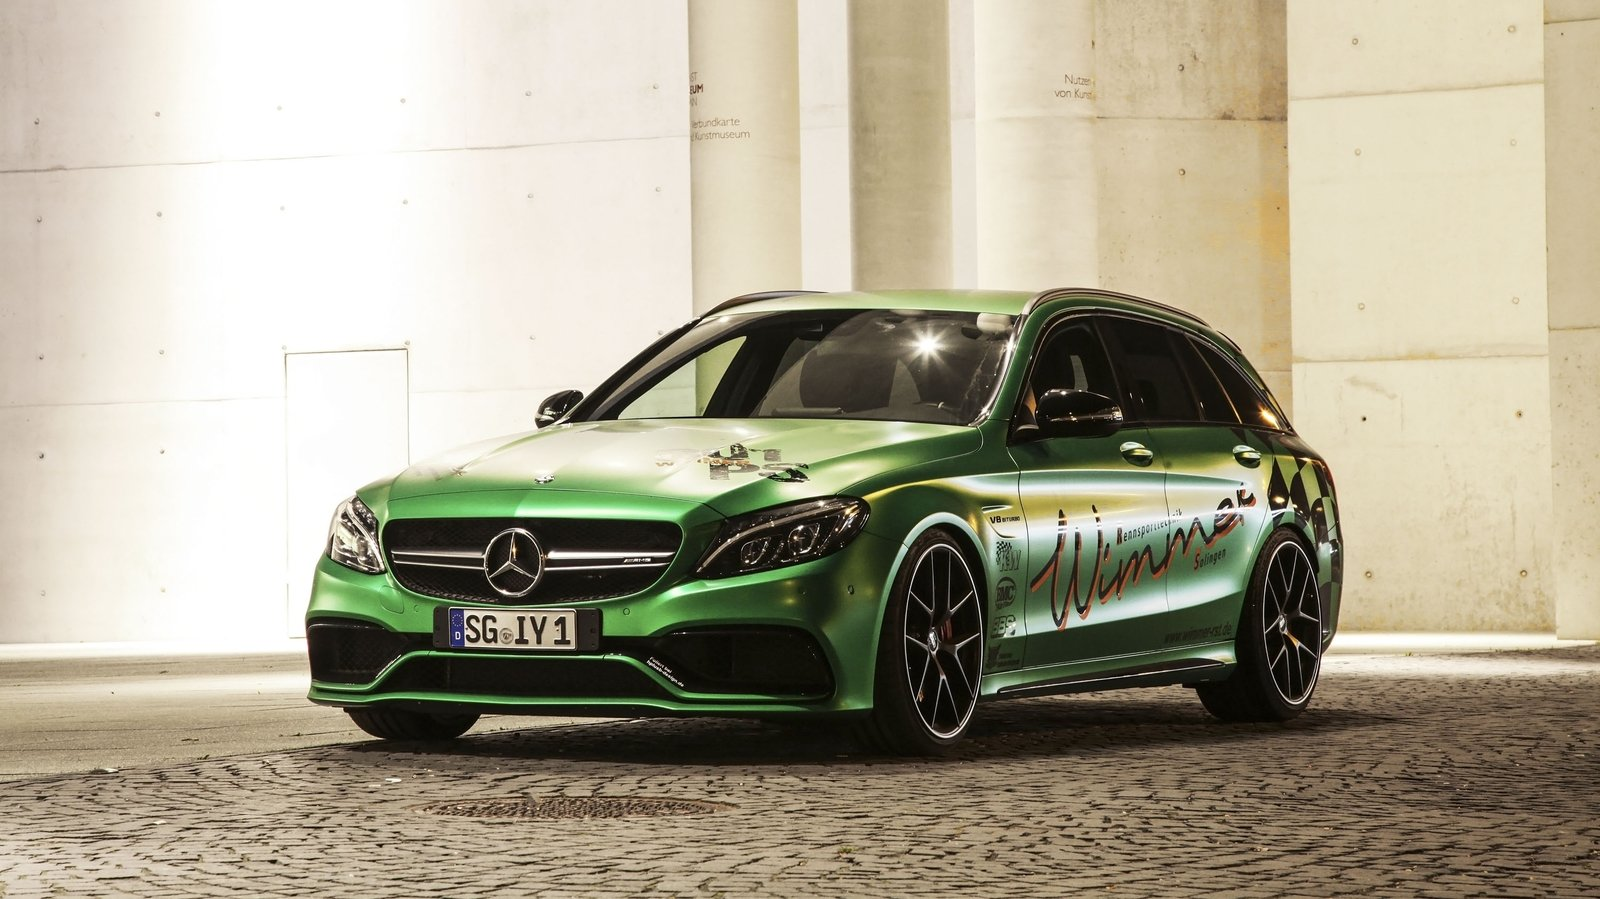 2017 mercedes amg c63 estate by wimmer rs top speed. Black Bedroom Furniture Sets. Home Design Ideas